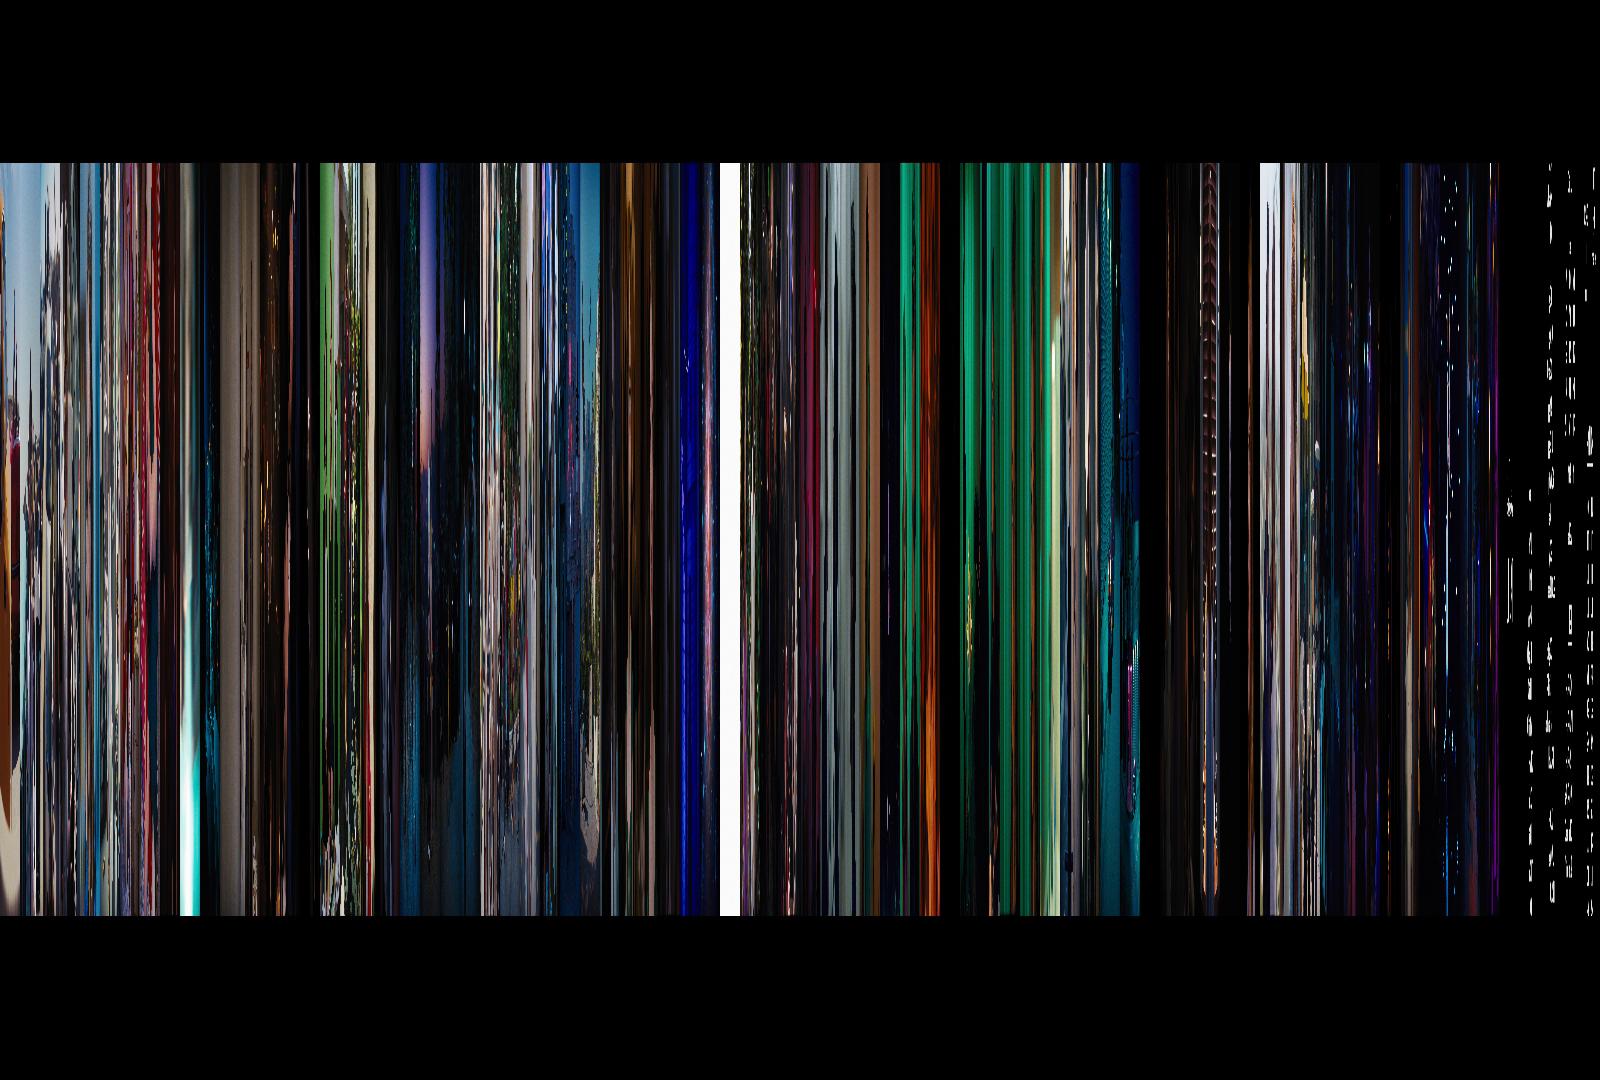 La La Land, 80 frames at 20 pixels wide each